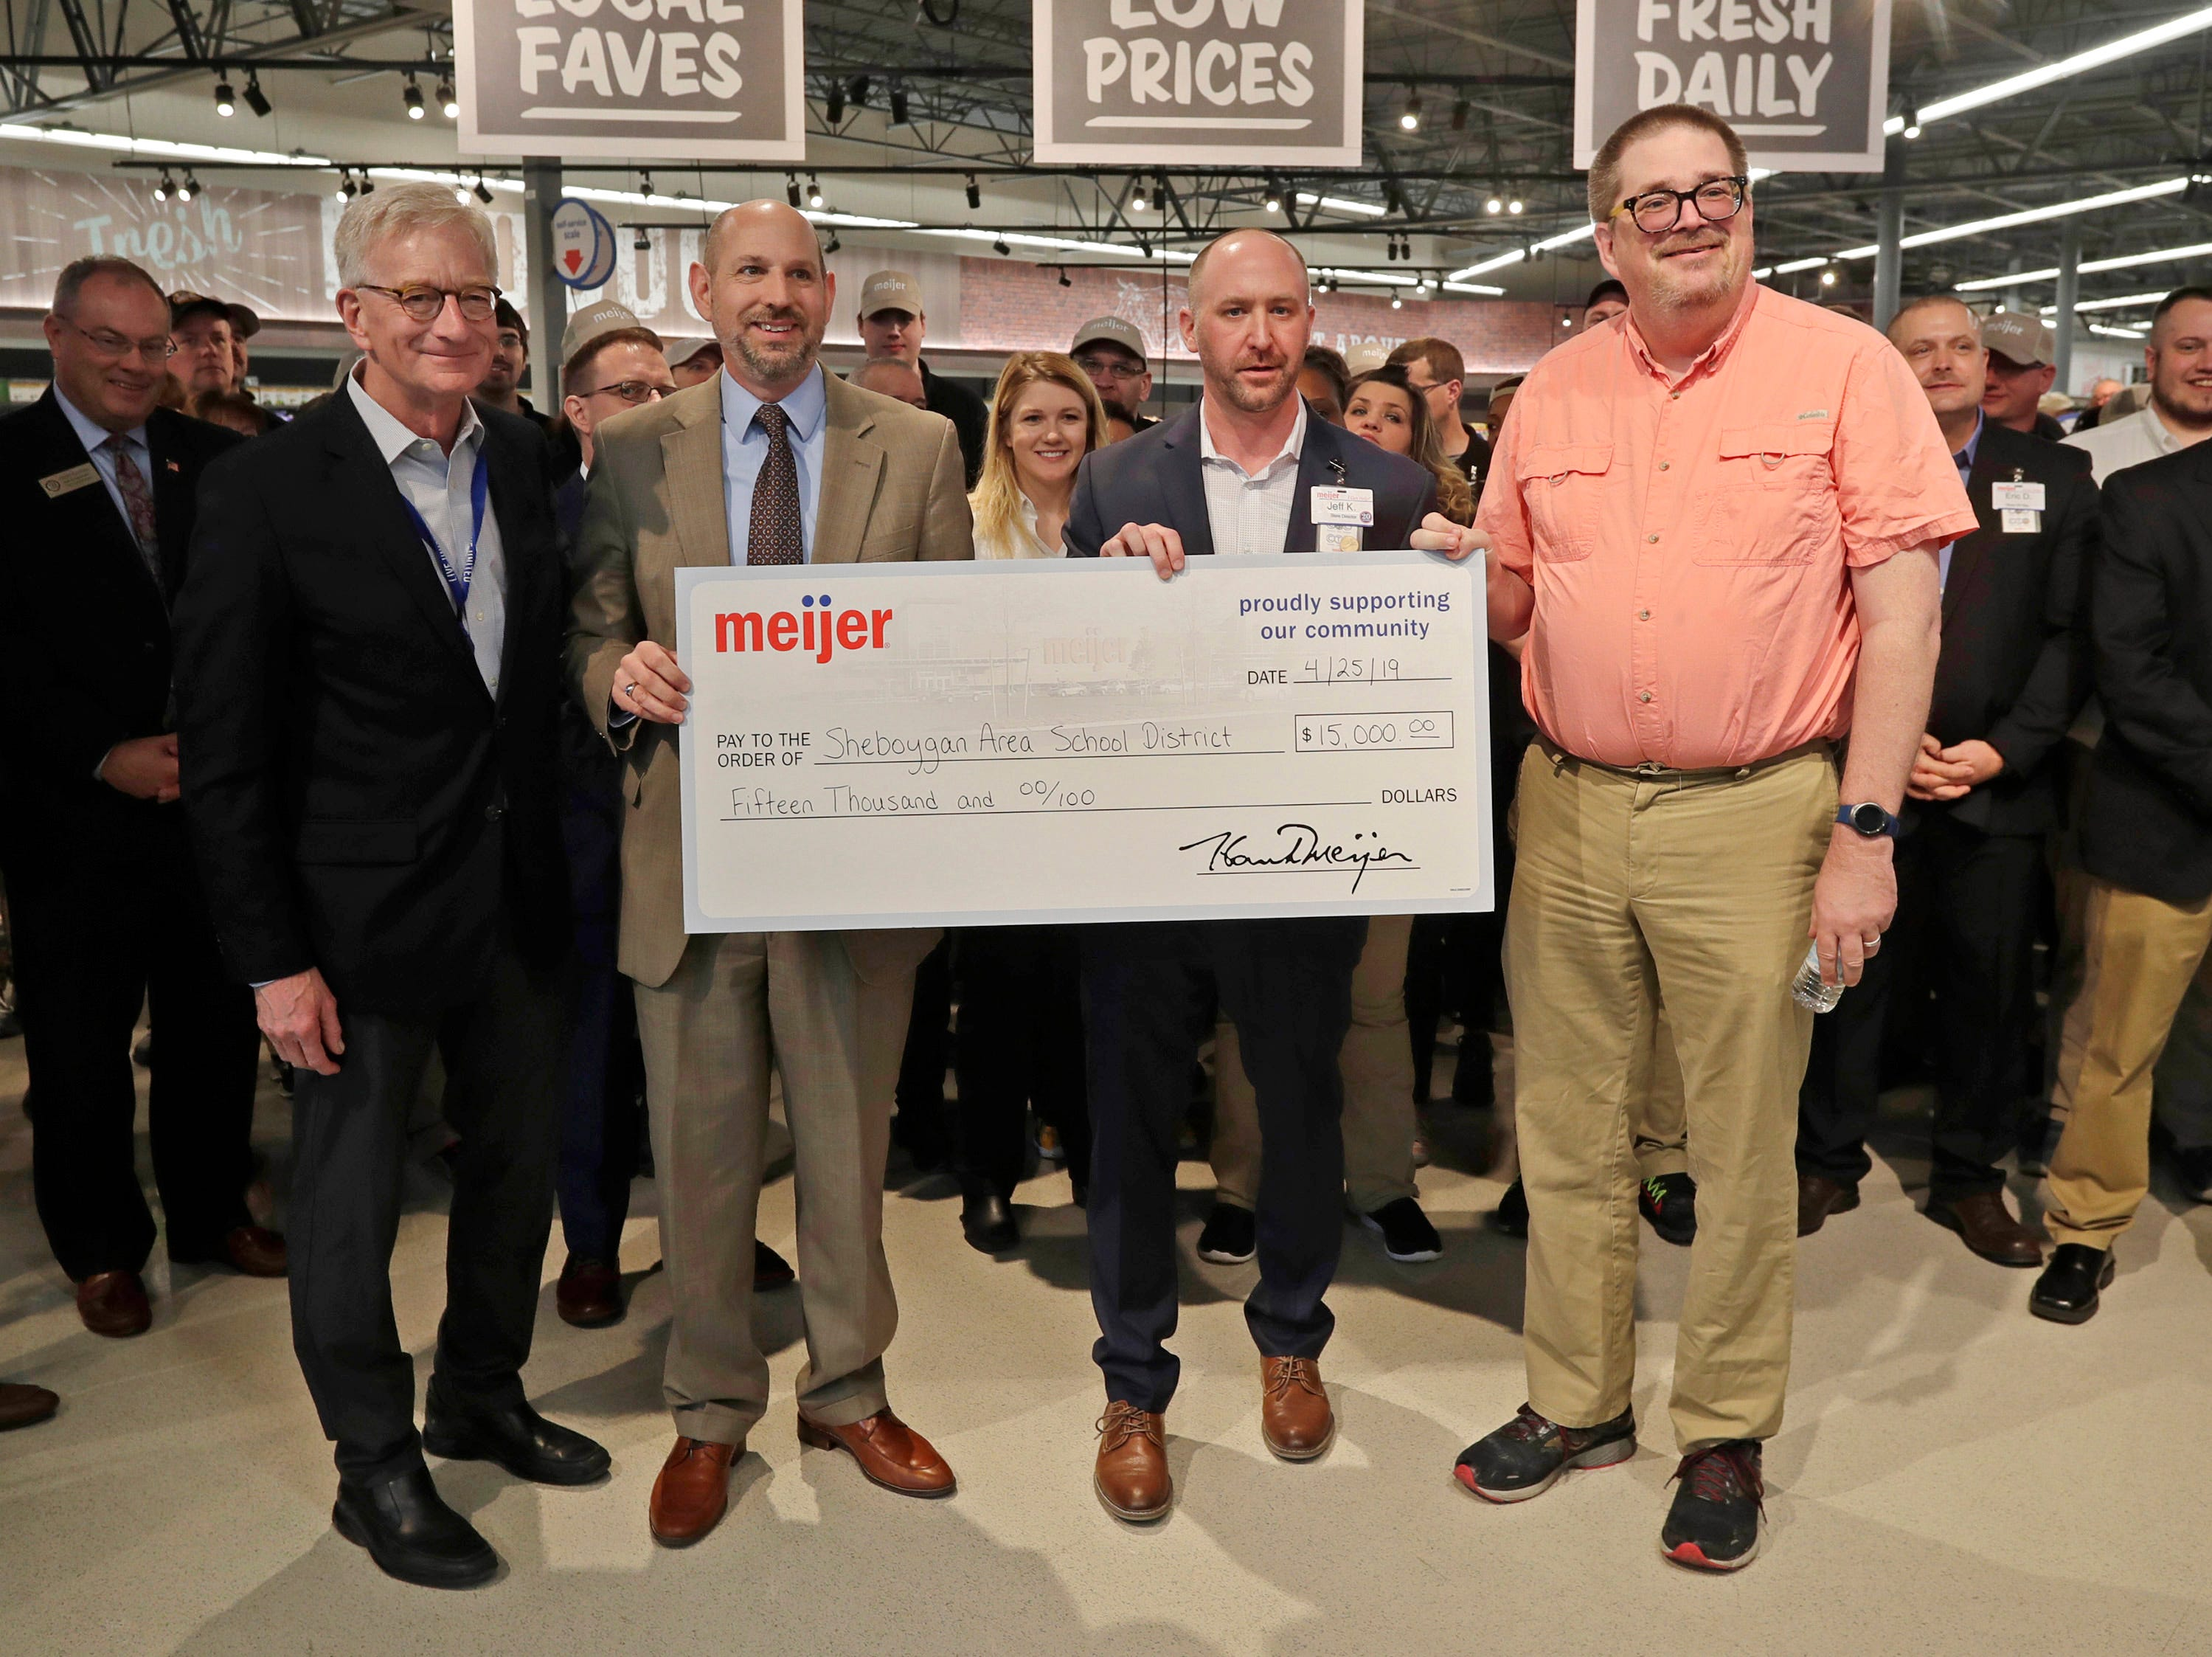 Meijer Executive Chairman Hank Meijer, left, and Sheboygan Store Director Jeff Kietzman, second from left, present a check for $15,000 to the Sheboygan Area School District officials at Meijer, Thursday April 25, 2019, in Sheboygan, Wis. The 155,000-square-foot supercenter has 300 employees on opening day.